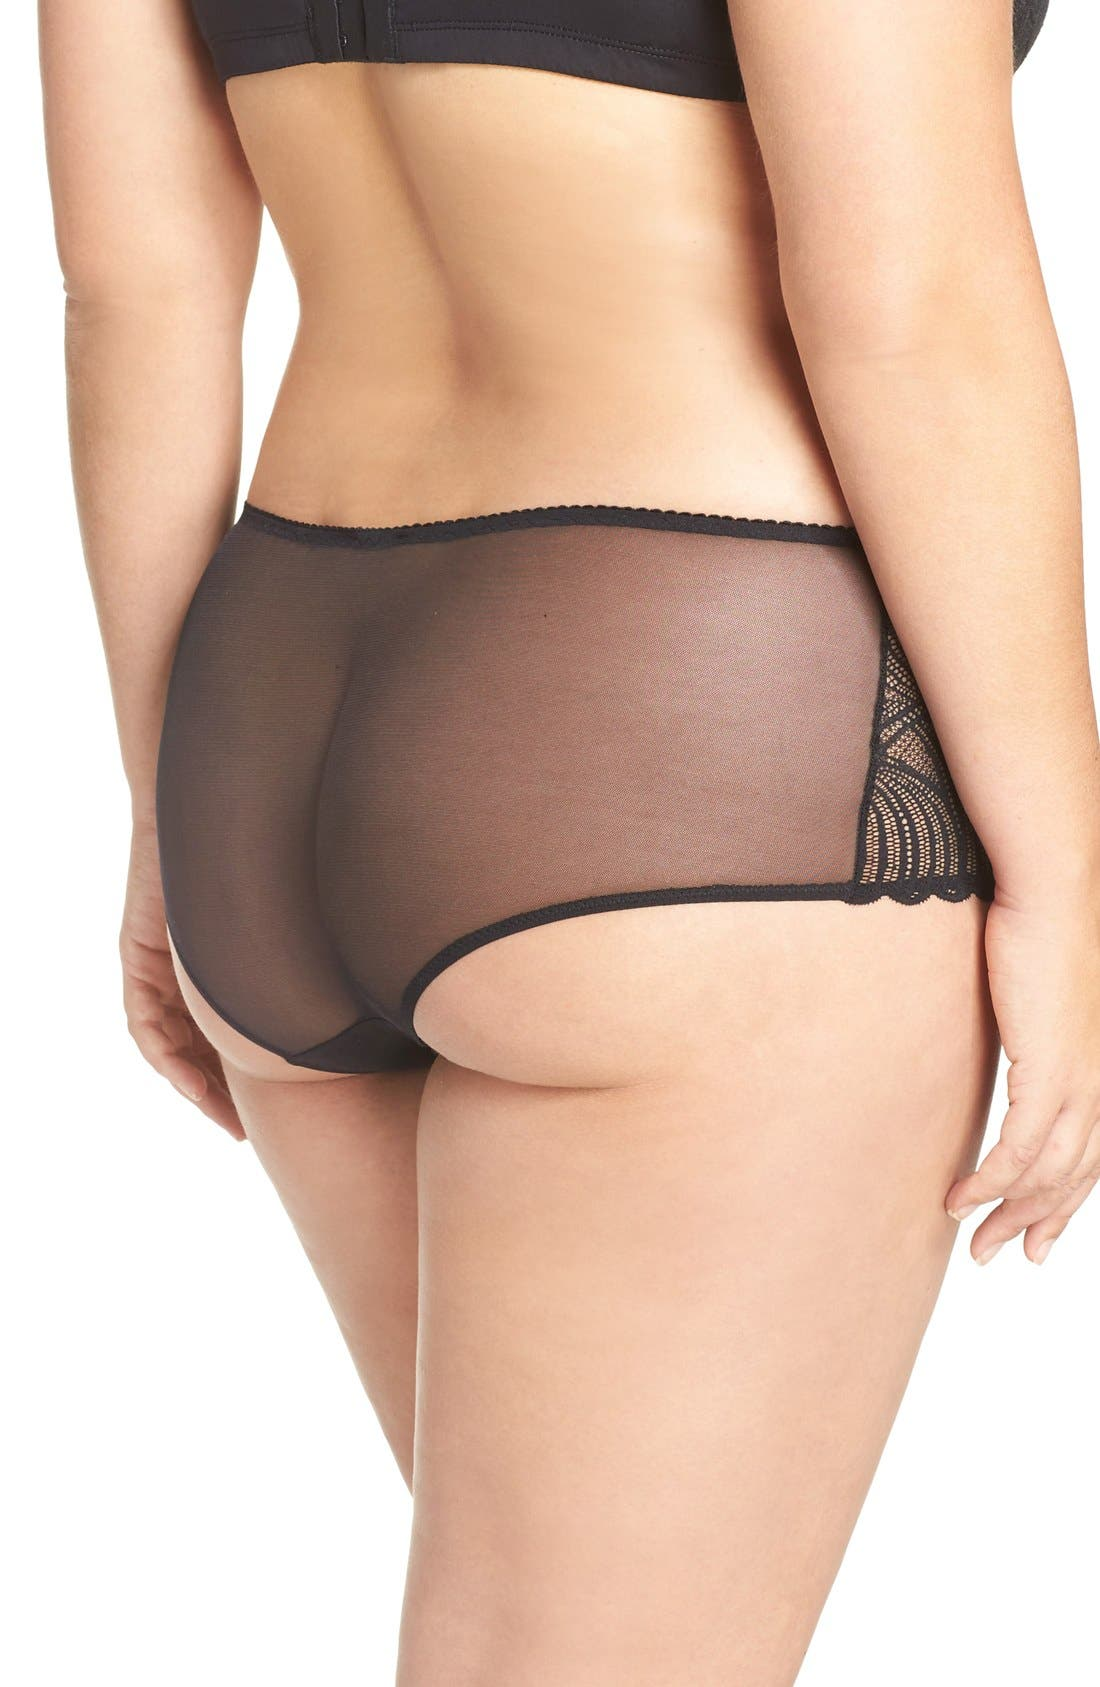 Alternate Image 2  - Cosabella Minoa Low Rise Boyshorts (Plus Size)